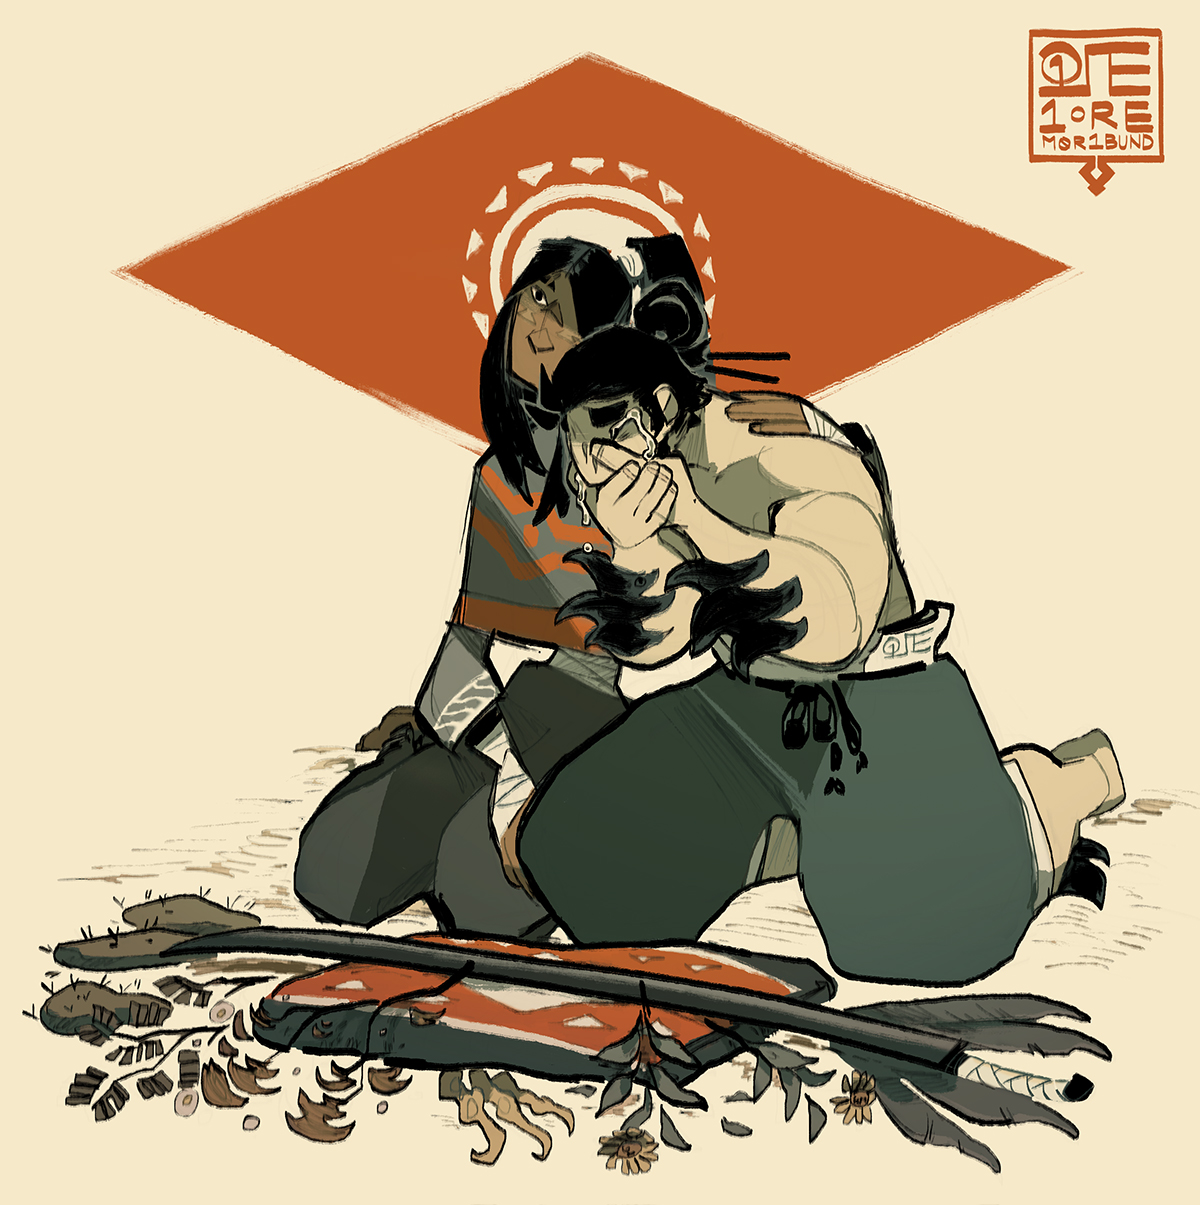 Sadren and Hei grieving at the foot of a makeshift shrine. Lain out before them are nopales, vulture feathers, sprigs of mesquite, creosote, and brittlebush, and Dai Hei's family sword.